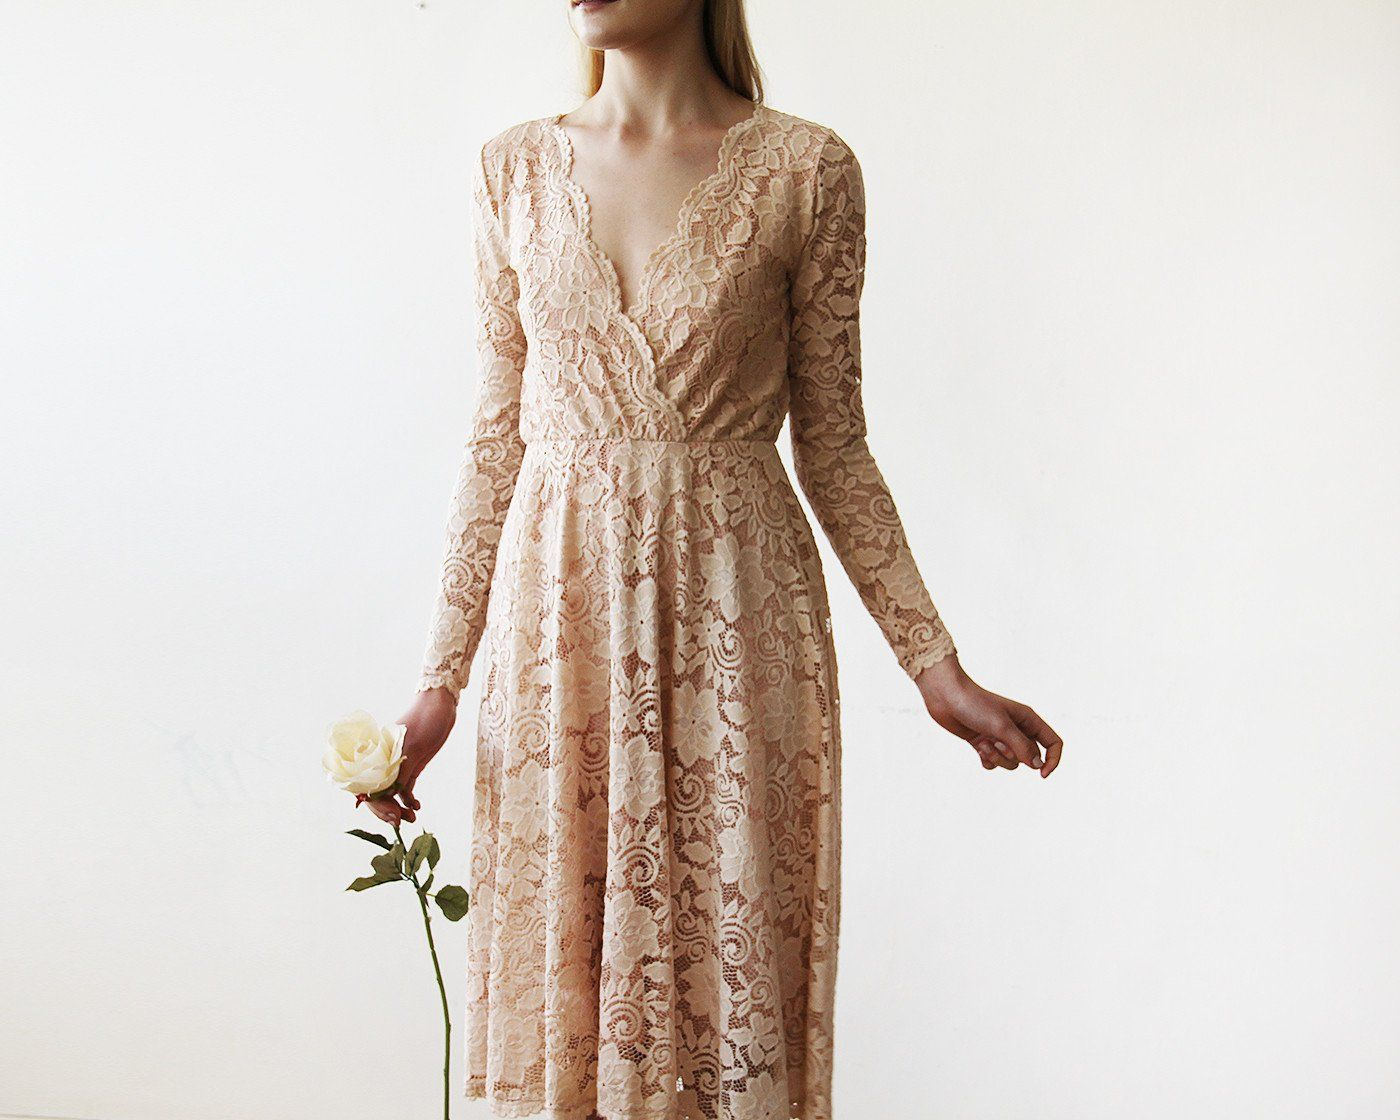 Pink Lace Long Sleeve Short Dress 1161 - Blushfashion